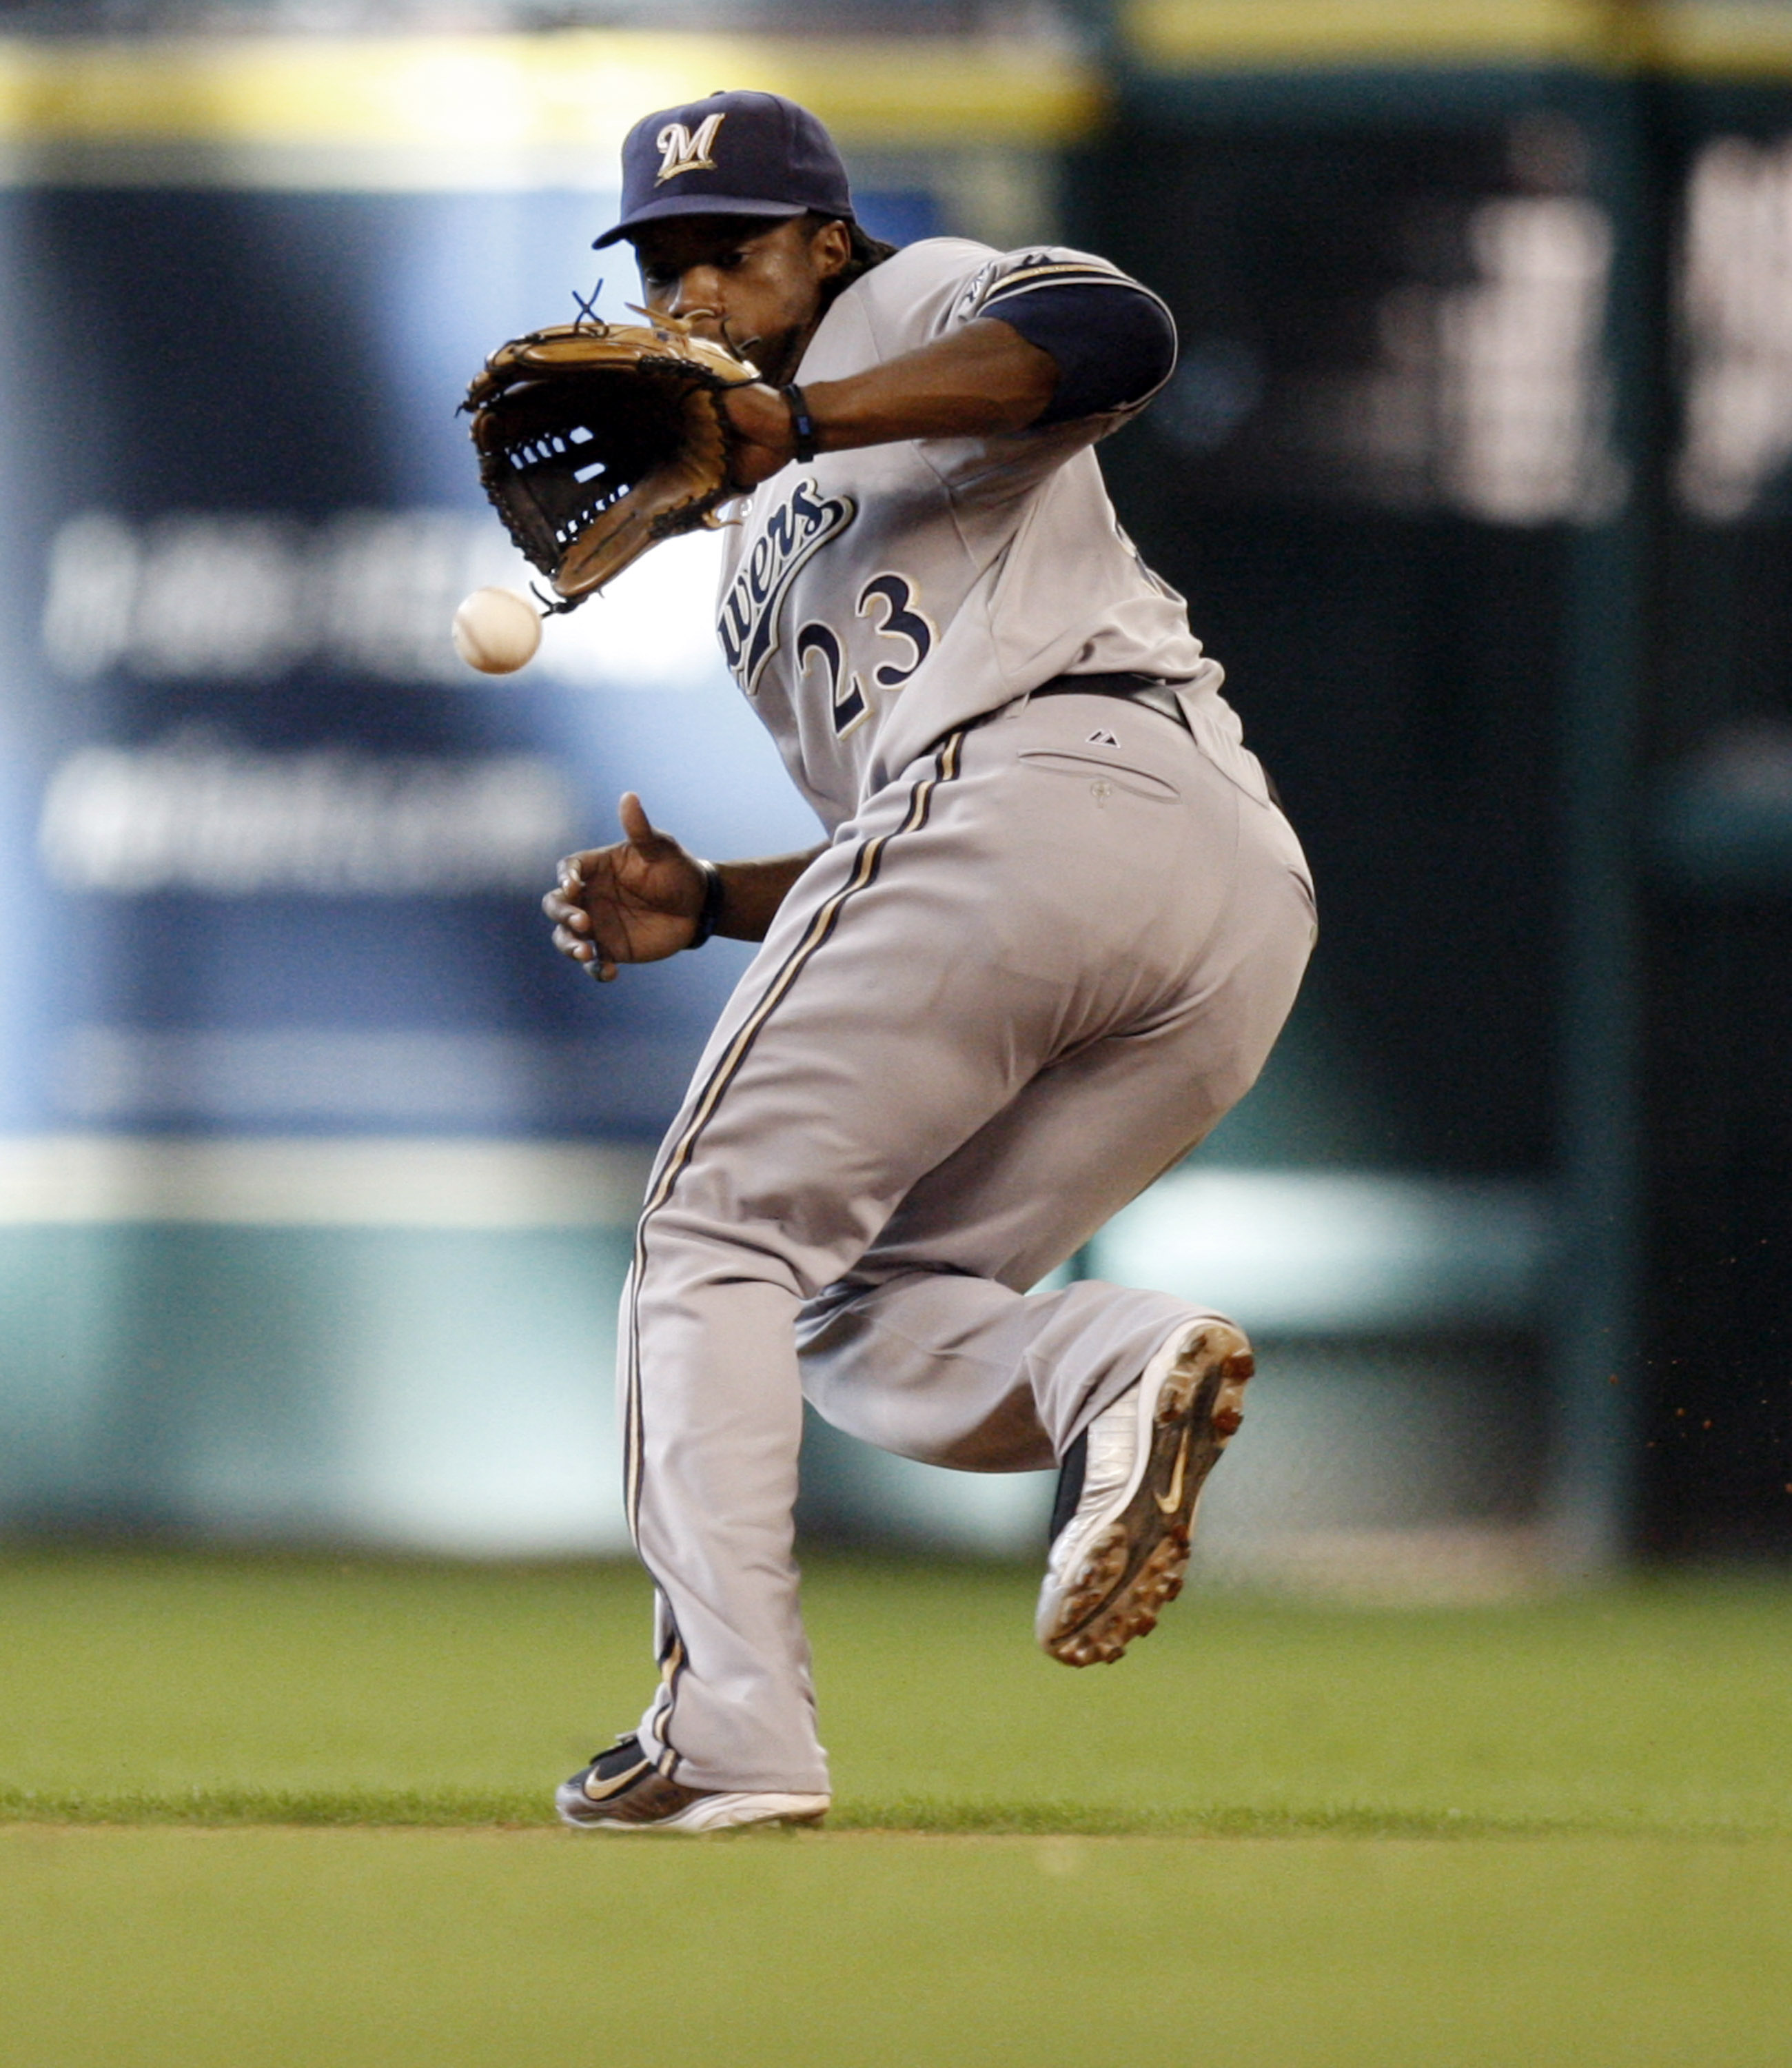 HOUSTON - SEPTEMBER 15:  Second baseman Rickie Weeks #23 of the Milwaukee Brewers makes a backhand stab on a ball hit up the middle by the Houston Astros at Minute Maid Park on September 15, 2010 in Houston, Texas.  (Photo by Bob Levey/Getty Images)